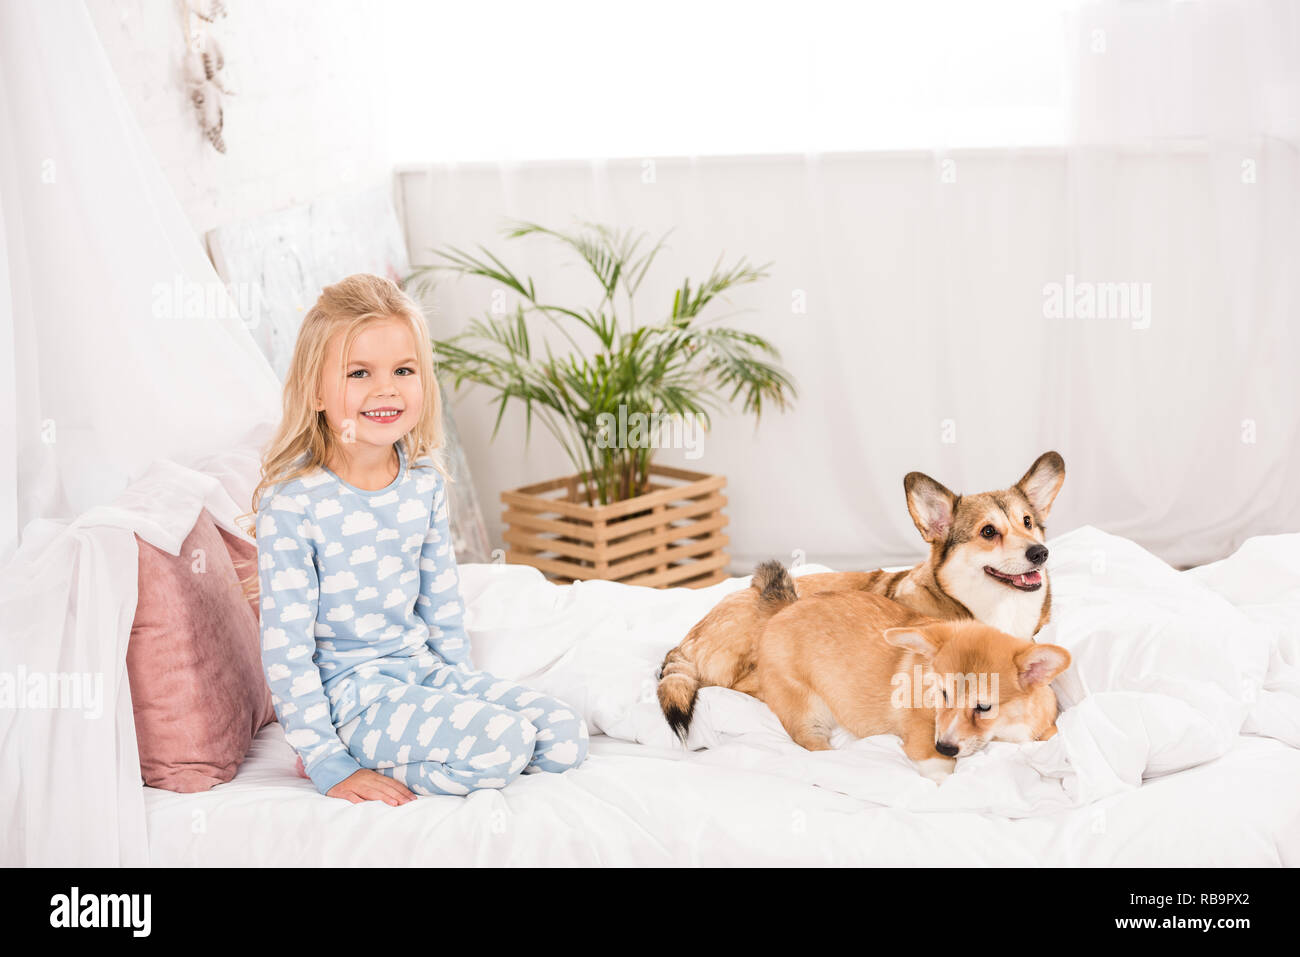 adorable happy child in pajamas sitting with corgi dogs in bed - Stock Image